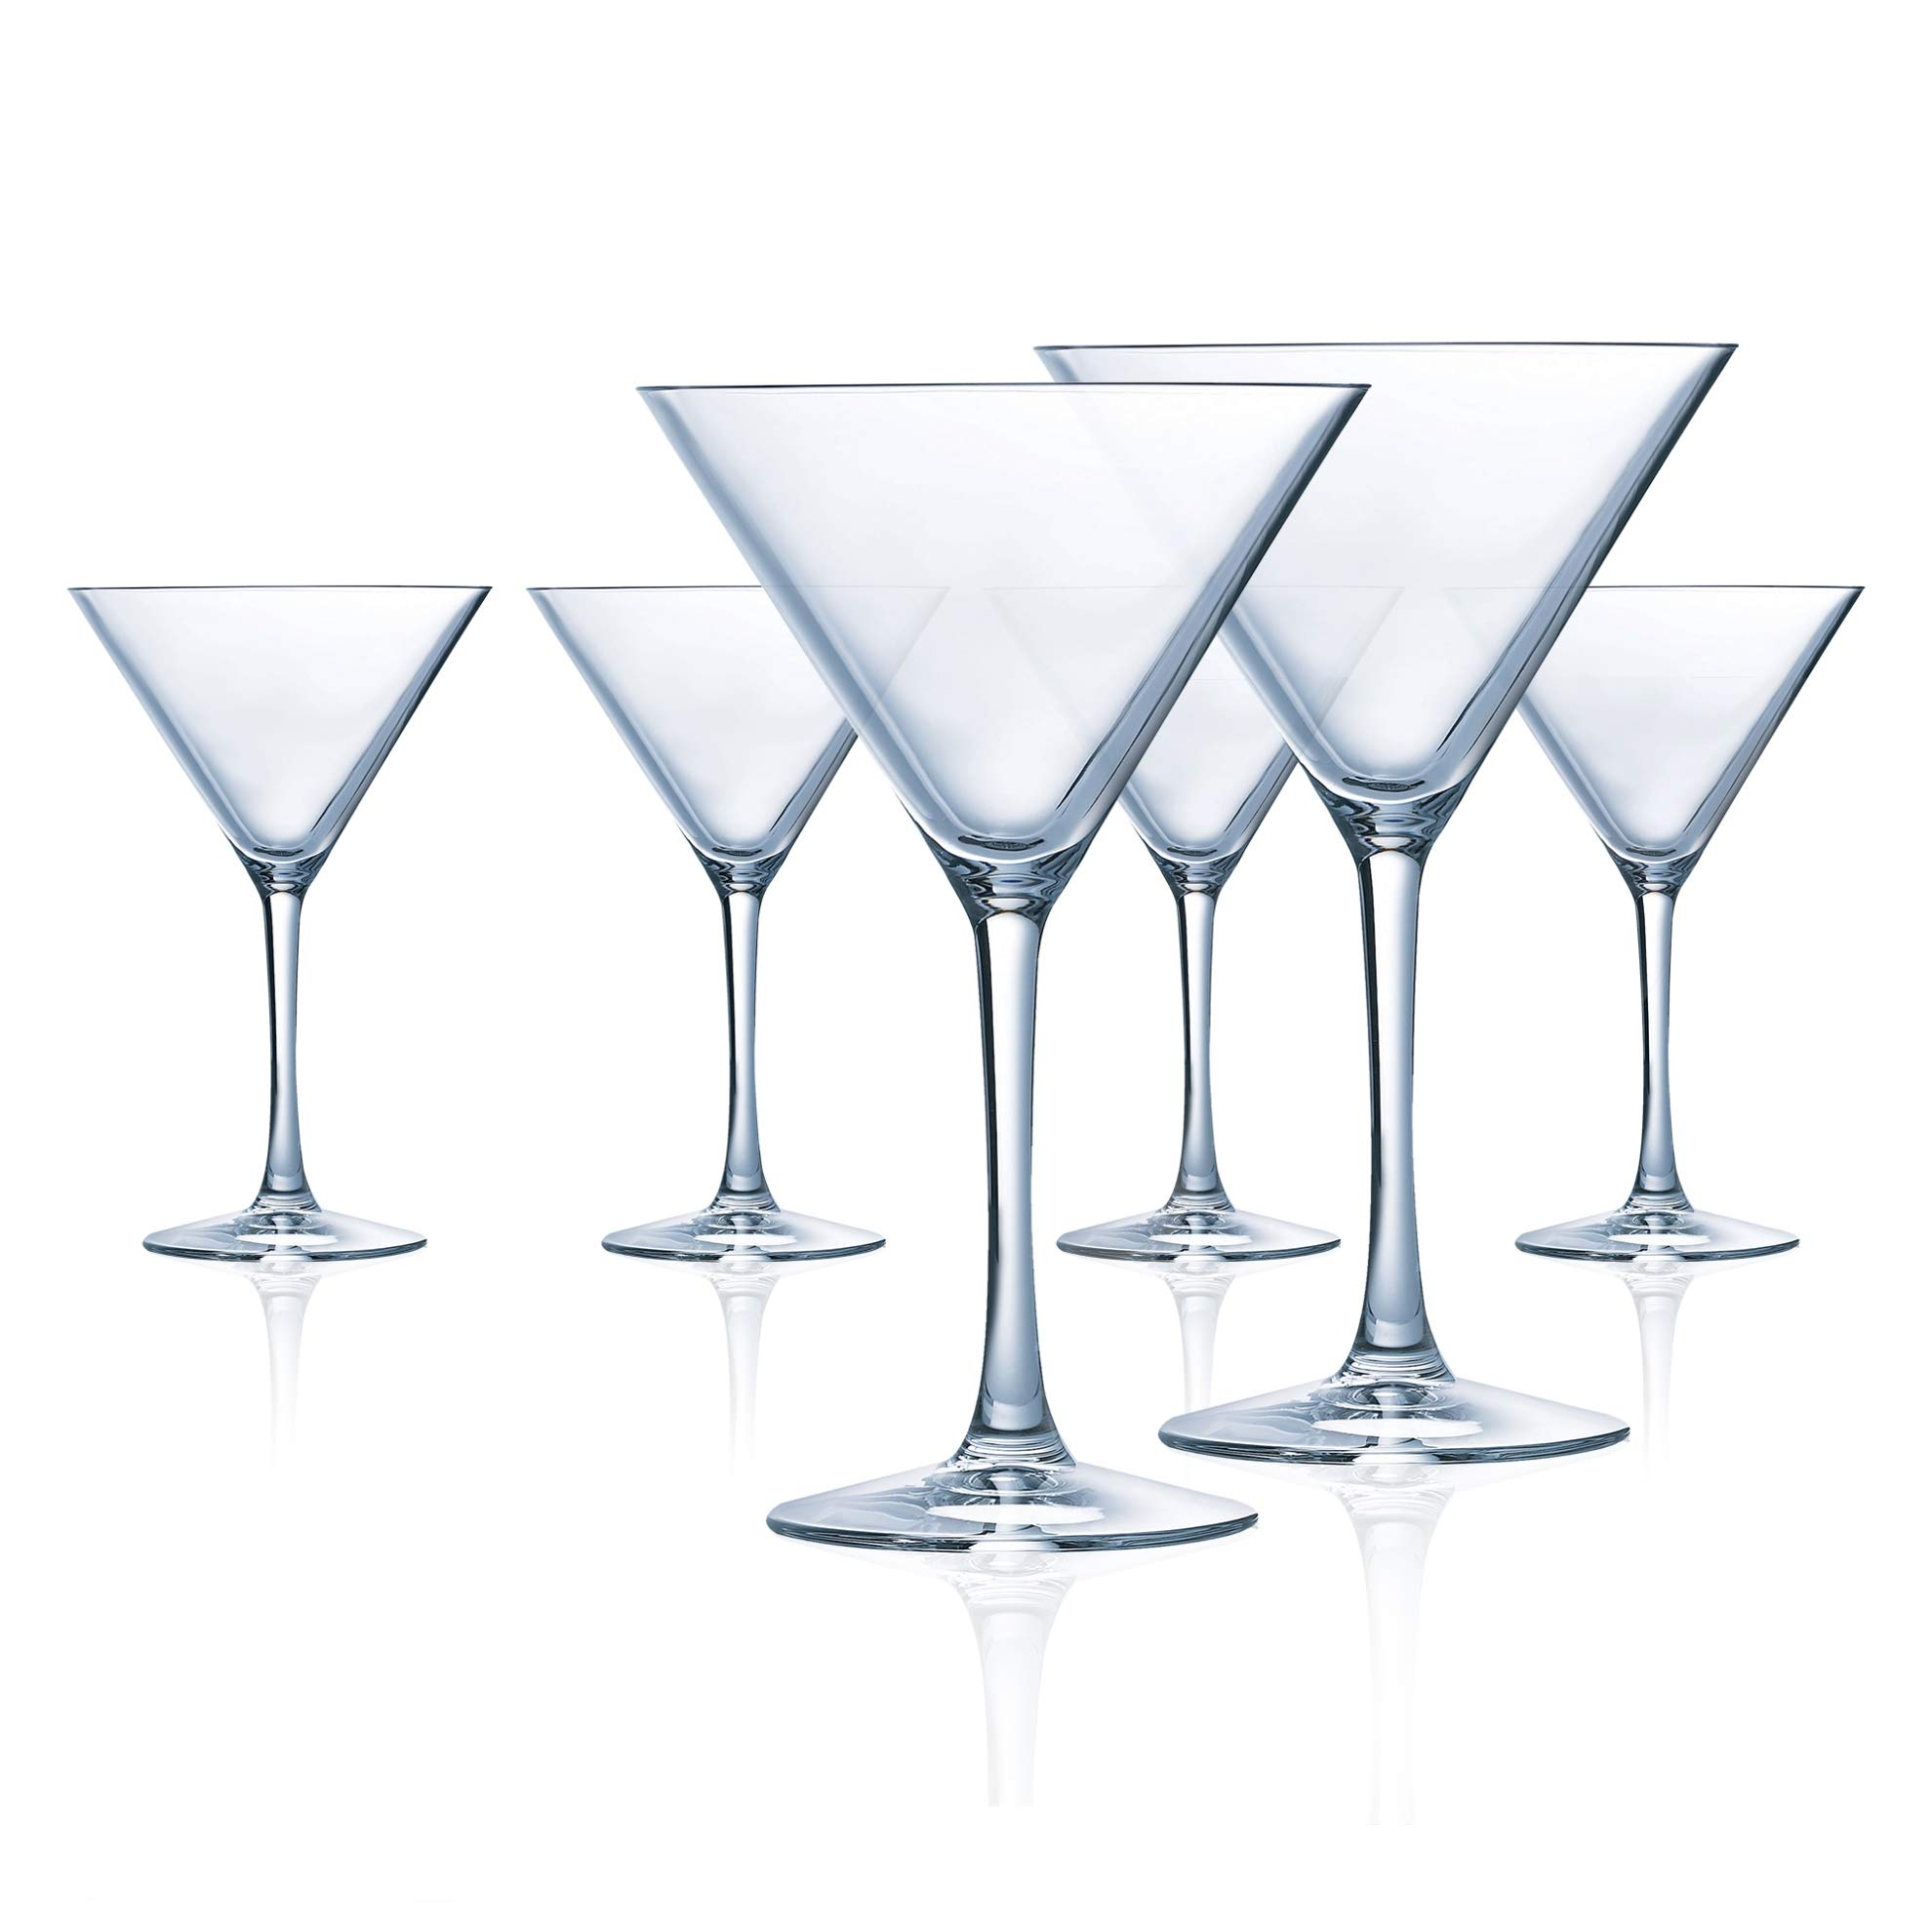 Chef & Sommelier L9225 Grand Vin 10.25 Ounce Martini, Set of 6, 10.25 oz, Clear